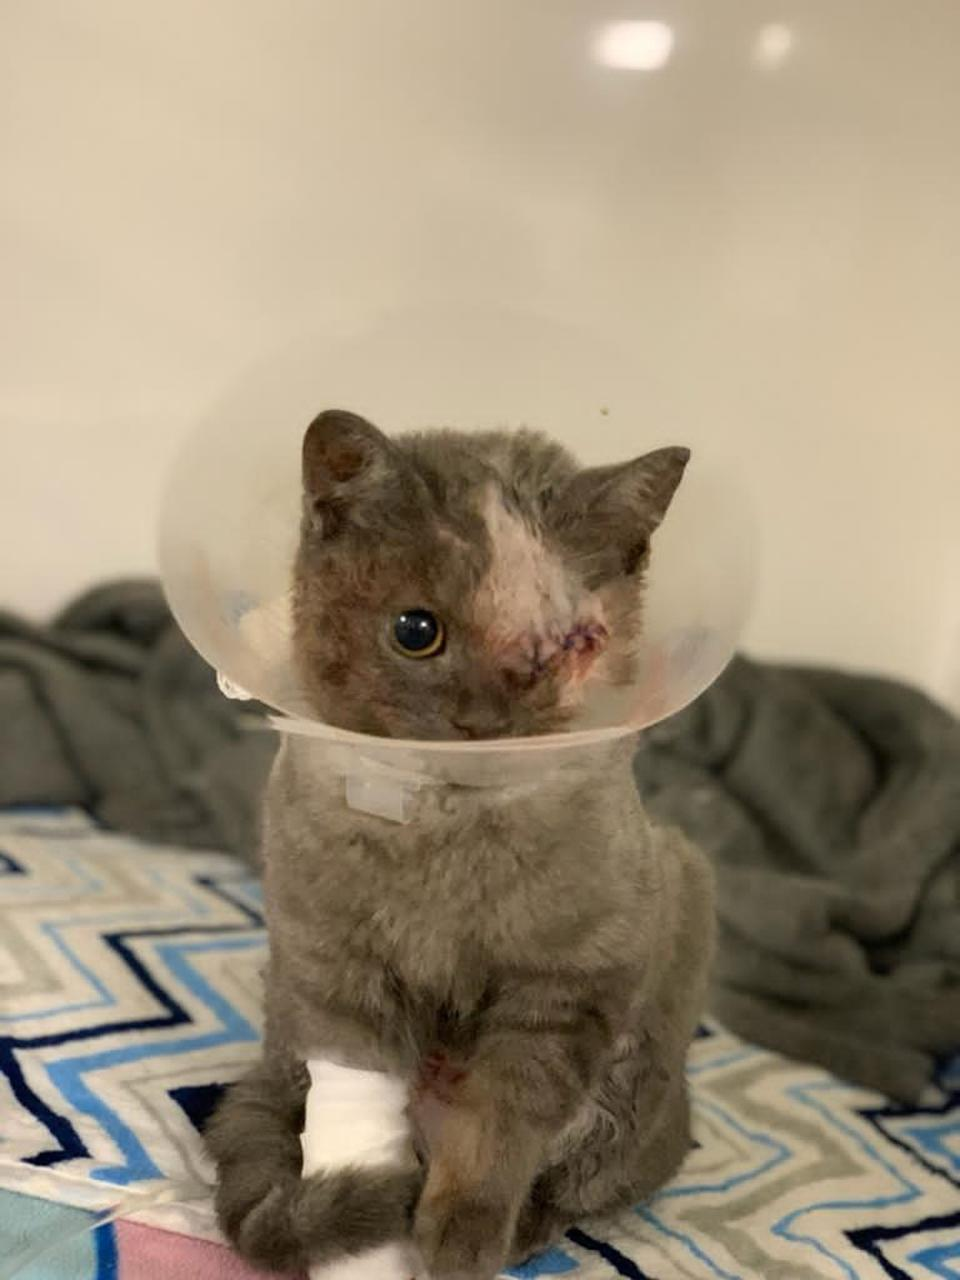 Eyela, a cat found in London, required treatment for burn wounds among other things